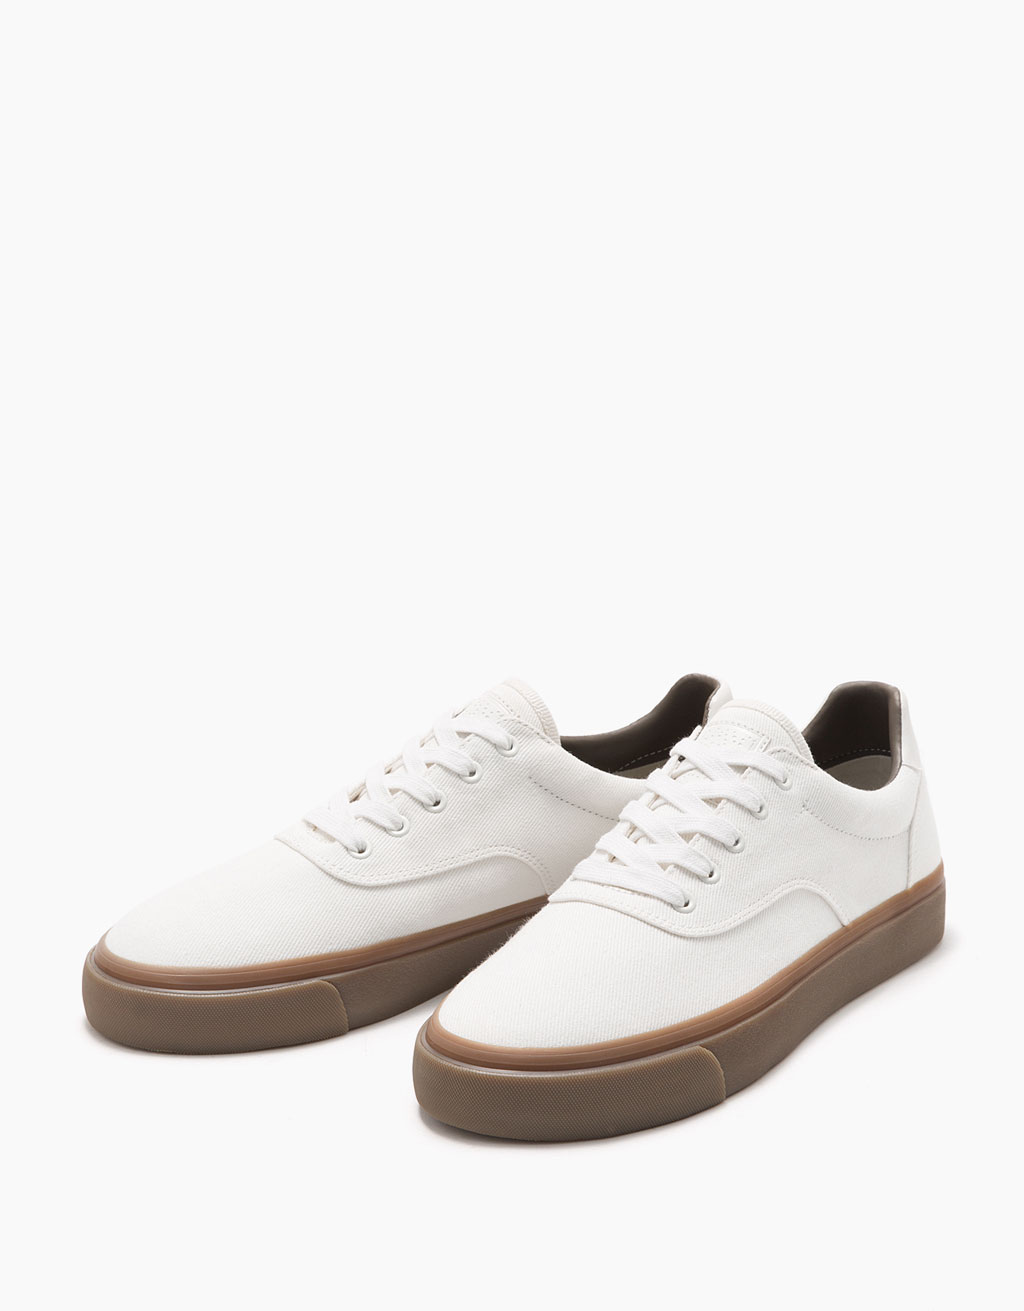 Fabric sneakers with caramel-coloured outsole